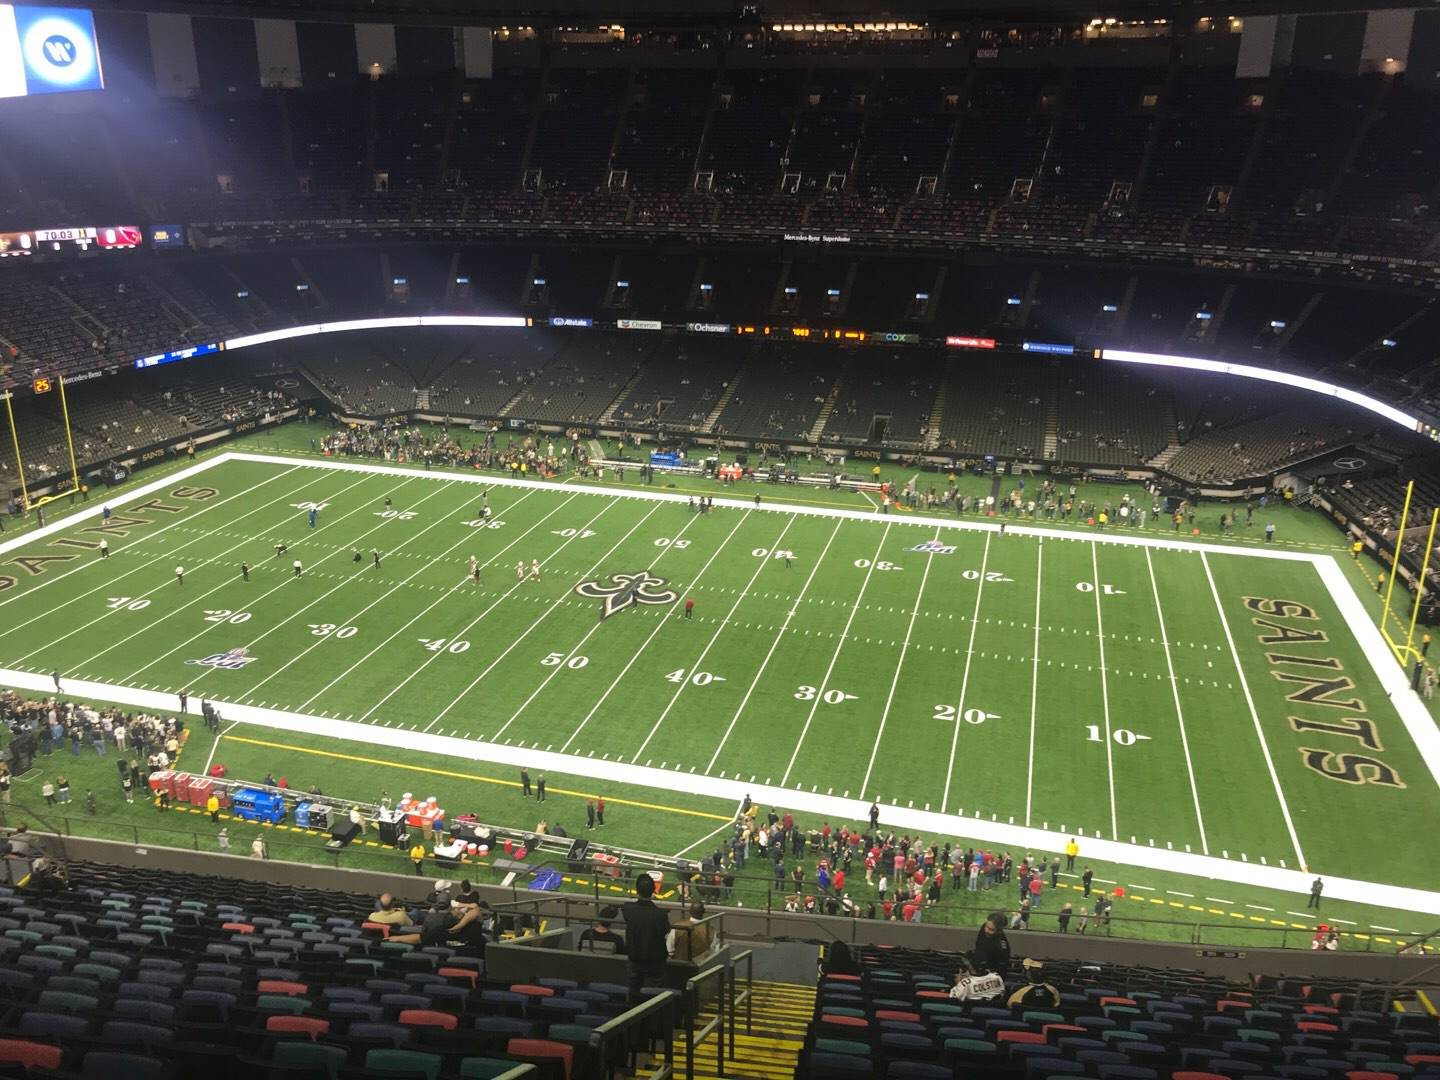 Mercedes-Benz Superdome Section 611 Row 24 Seat 23